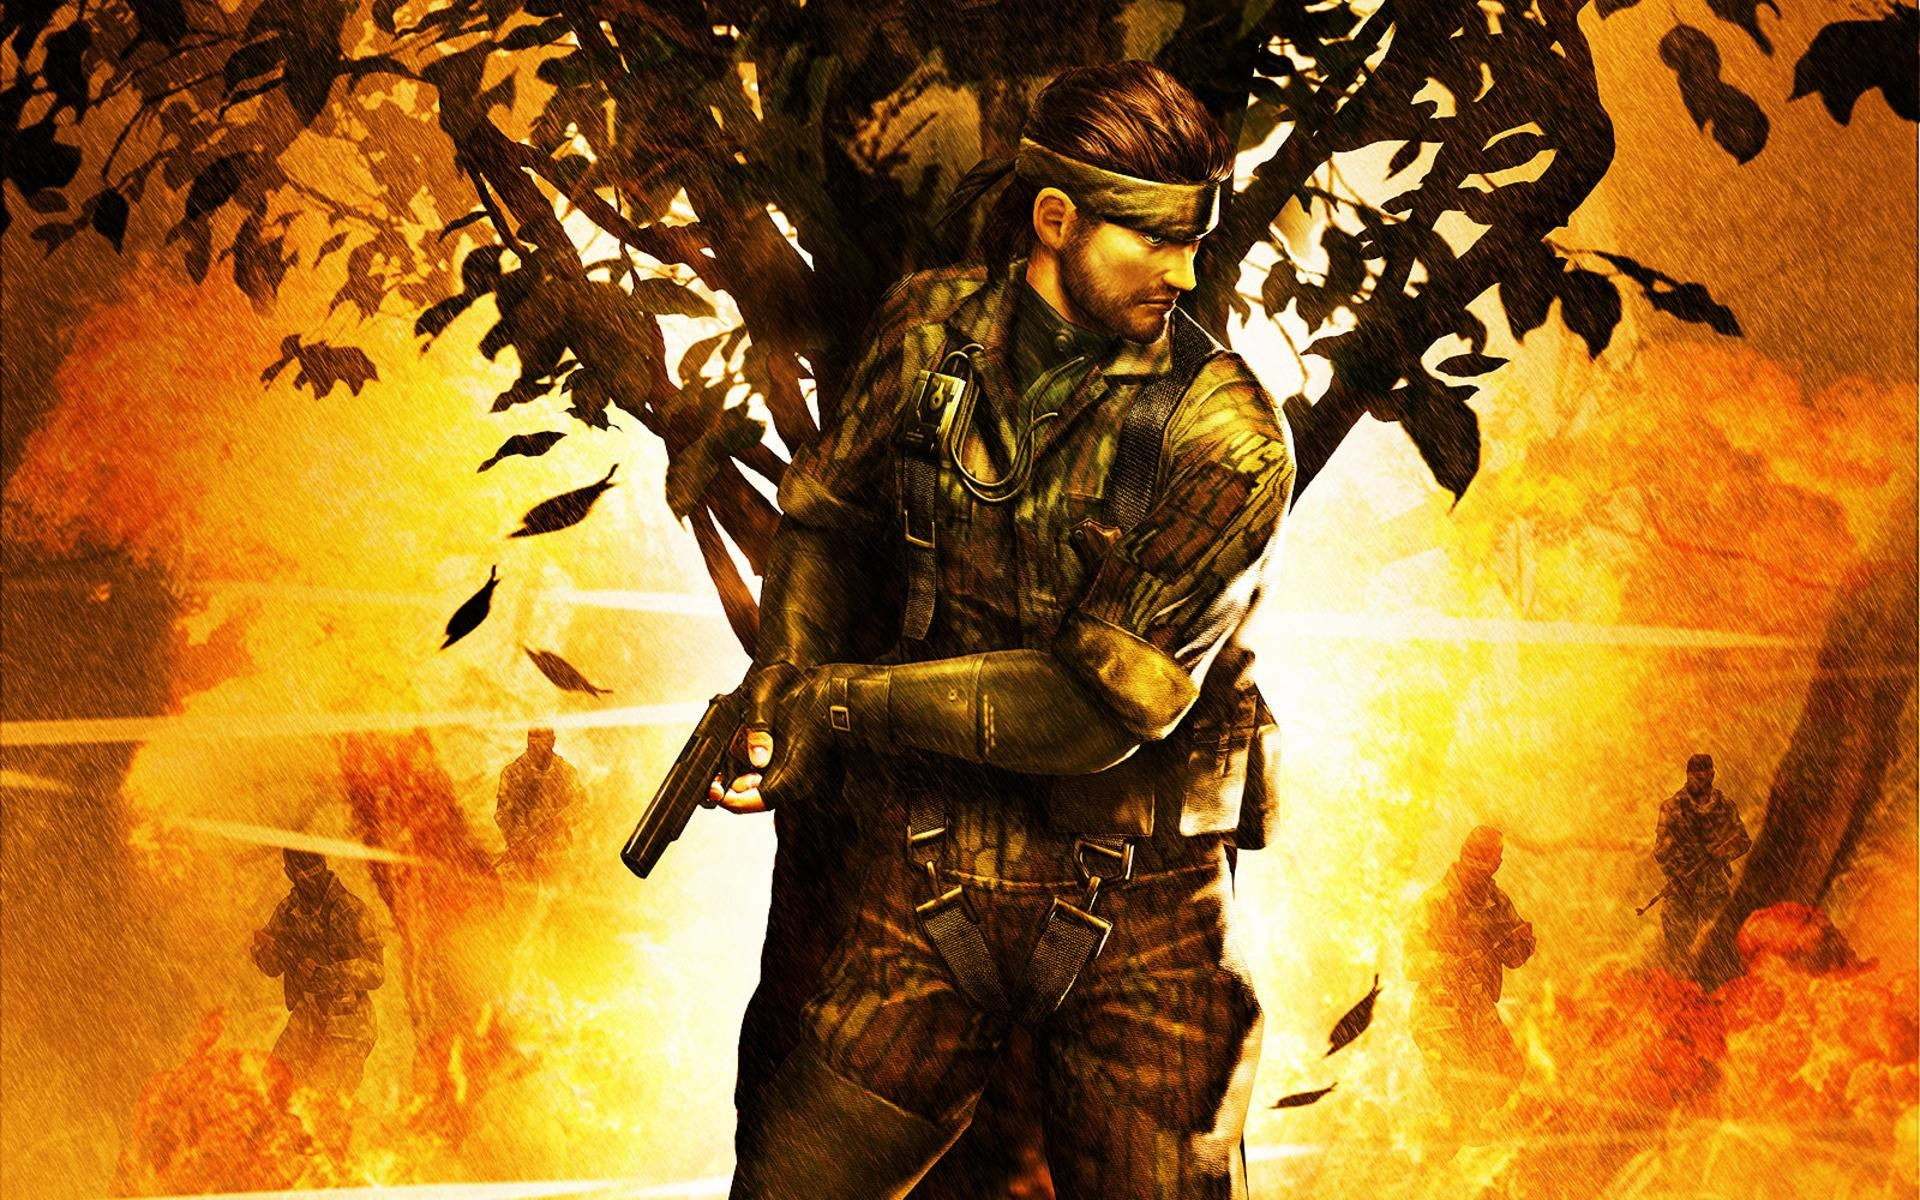 1920x1200 Metal Gear Solid 3 Wallpapers - Full HD wallpaper search